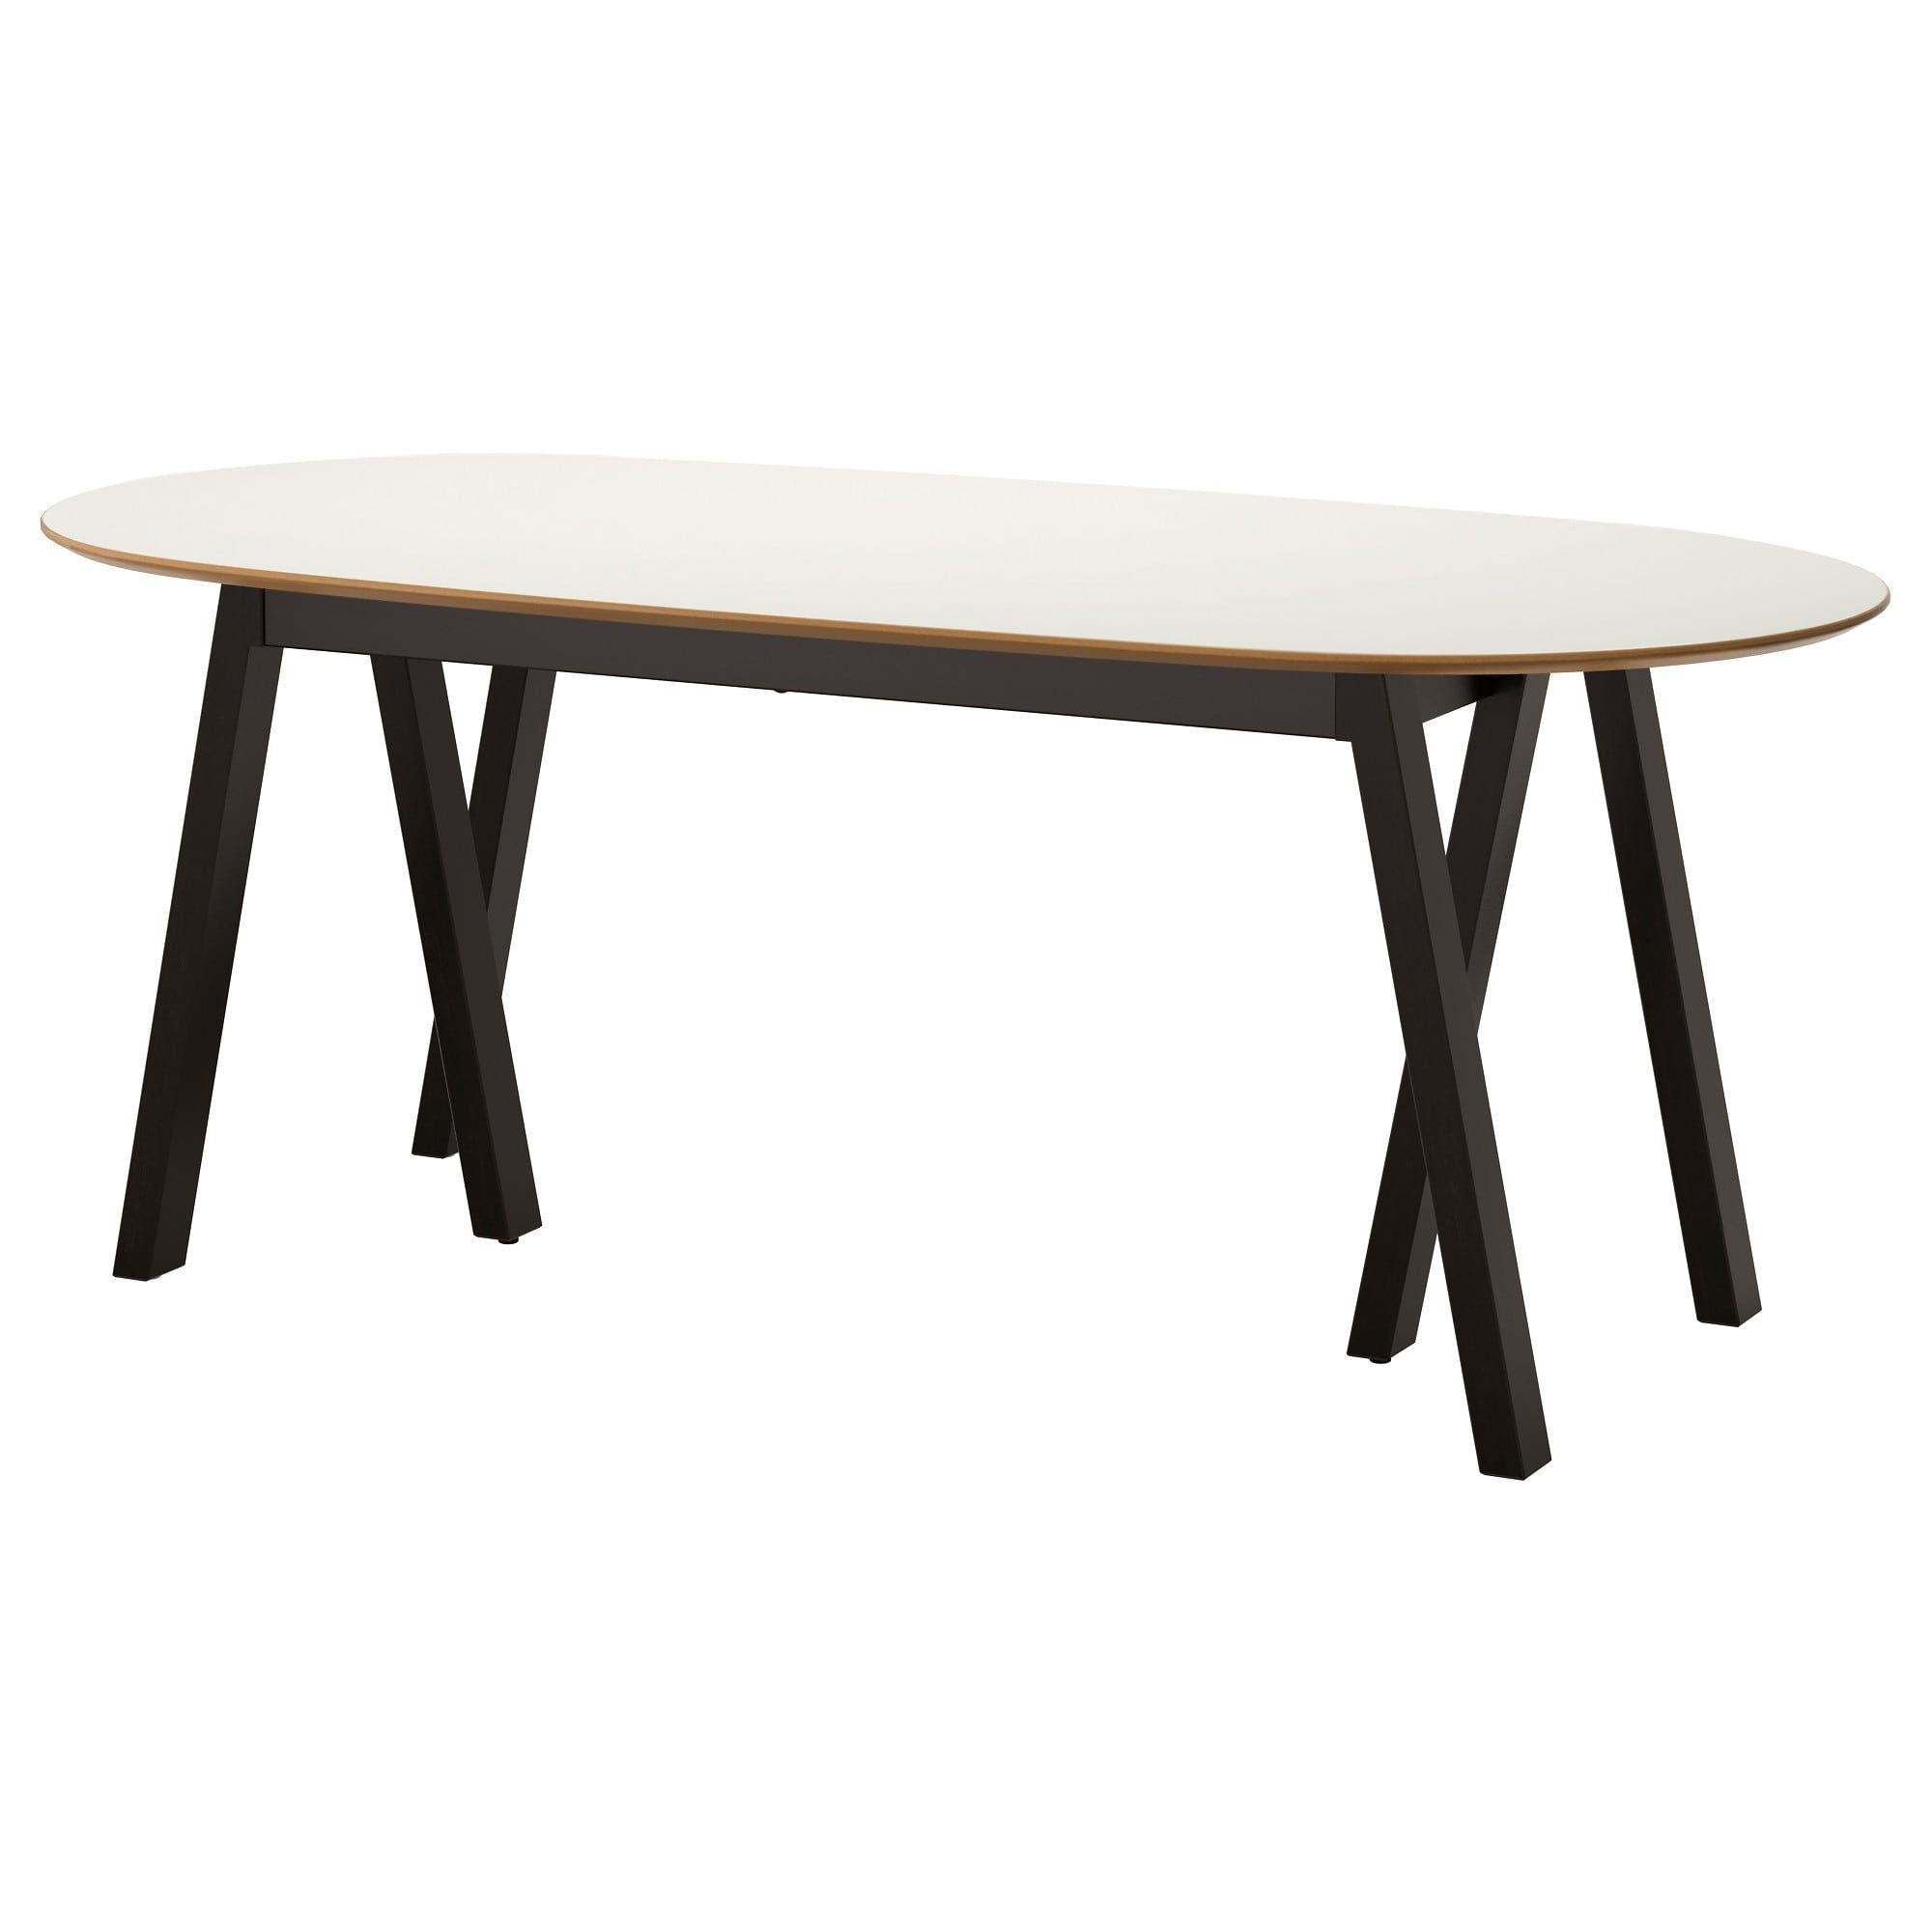 Home Furniture Store Modern Furnishings Decor Ikea Dining Table Dining Table In Kitchen Ikea Table [ 2000 x 2000 Pixel ]